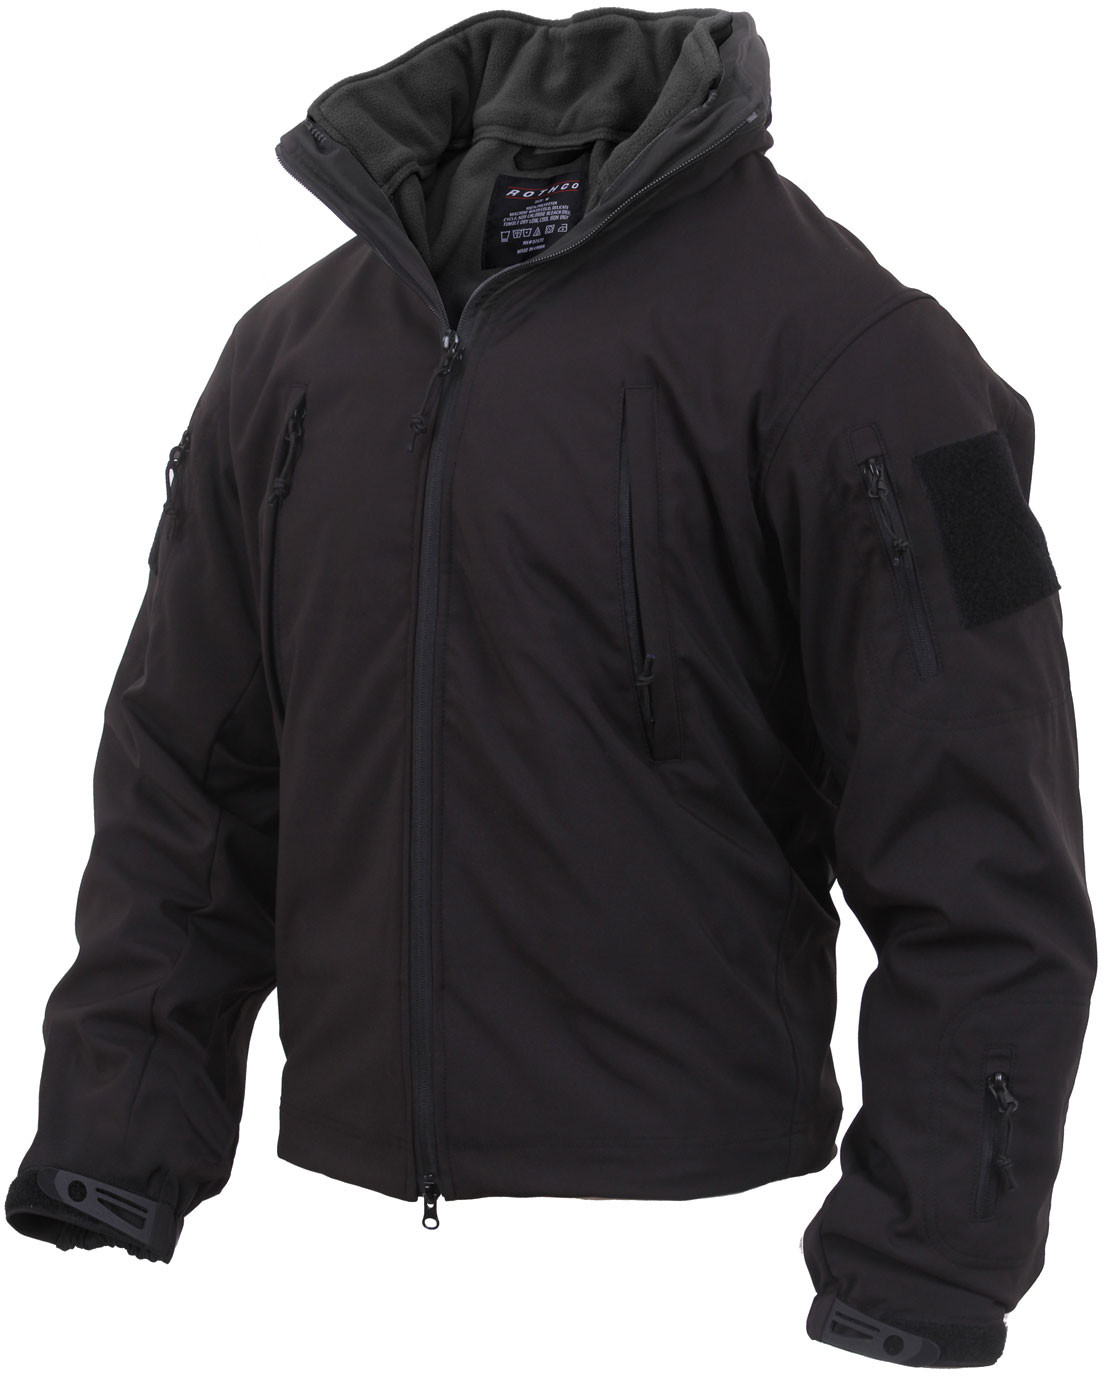 Black Military Systems 3 Season Waterproof Soft Shell Jacket with Fleece  Liner 6b99dba6f4a